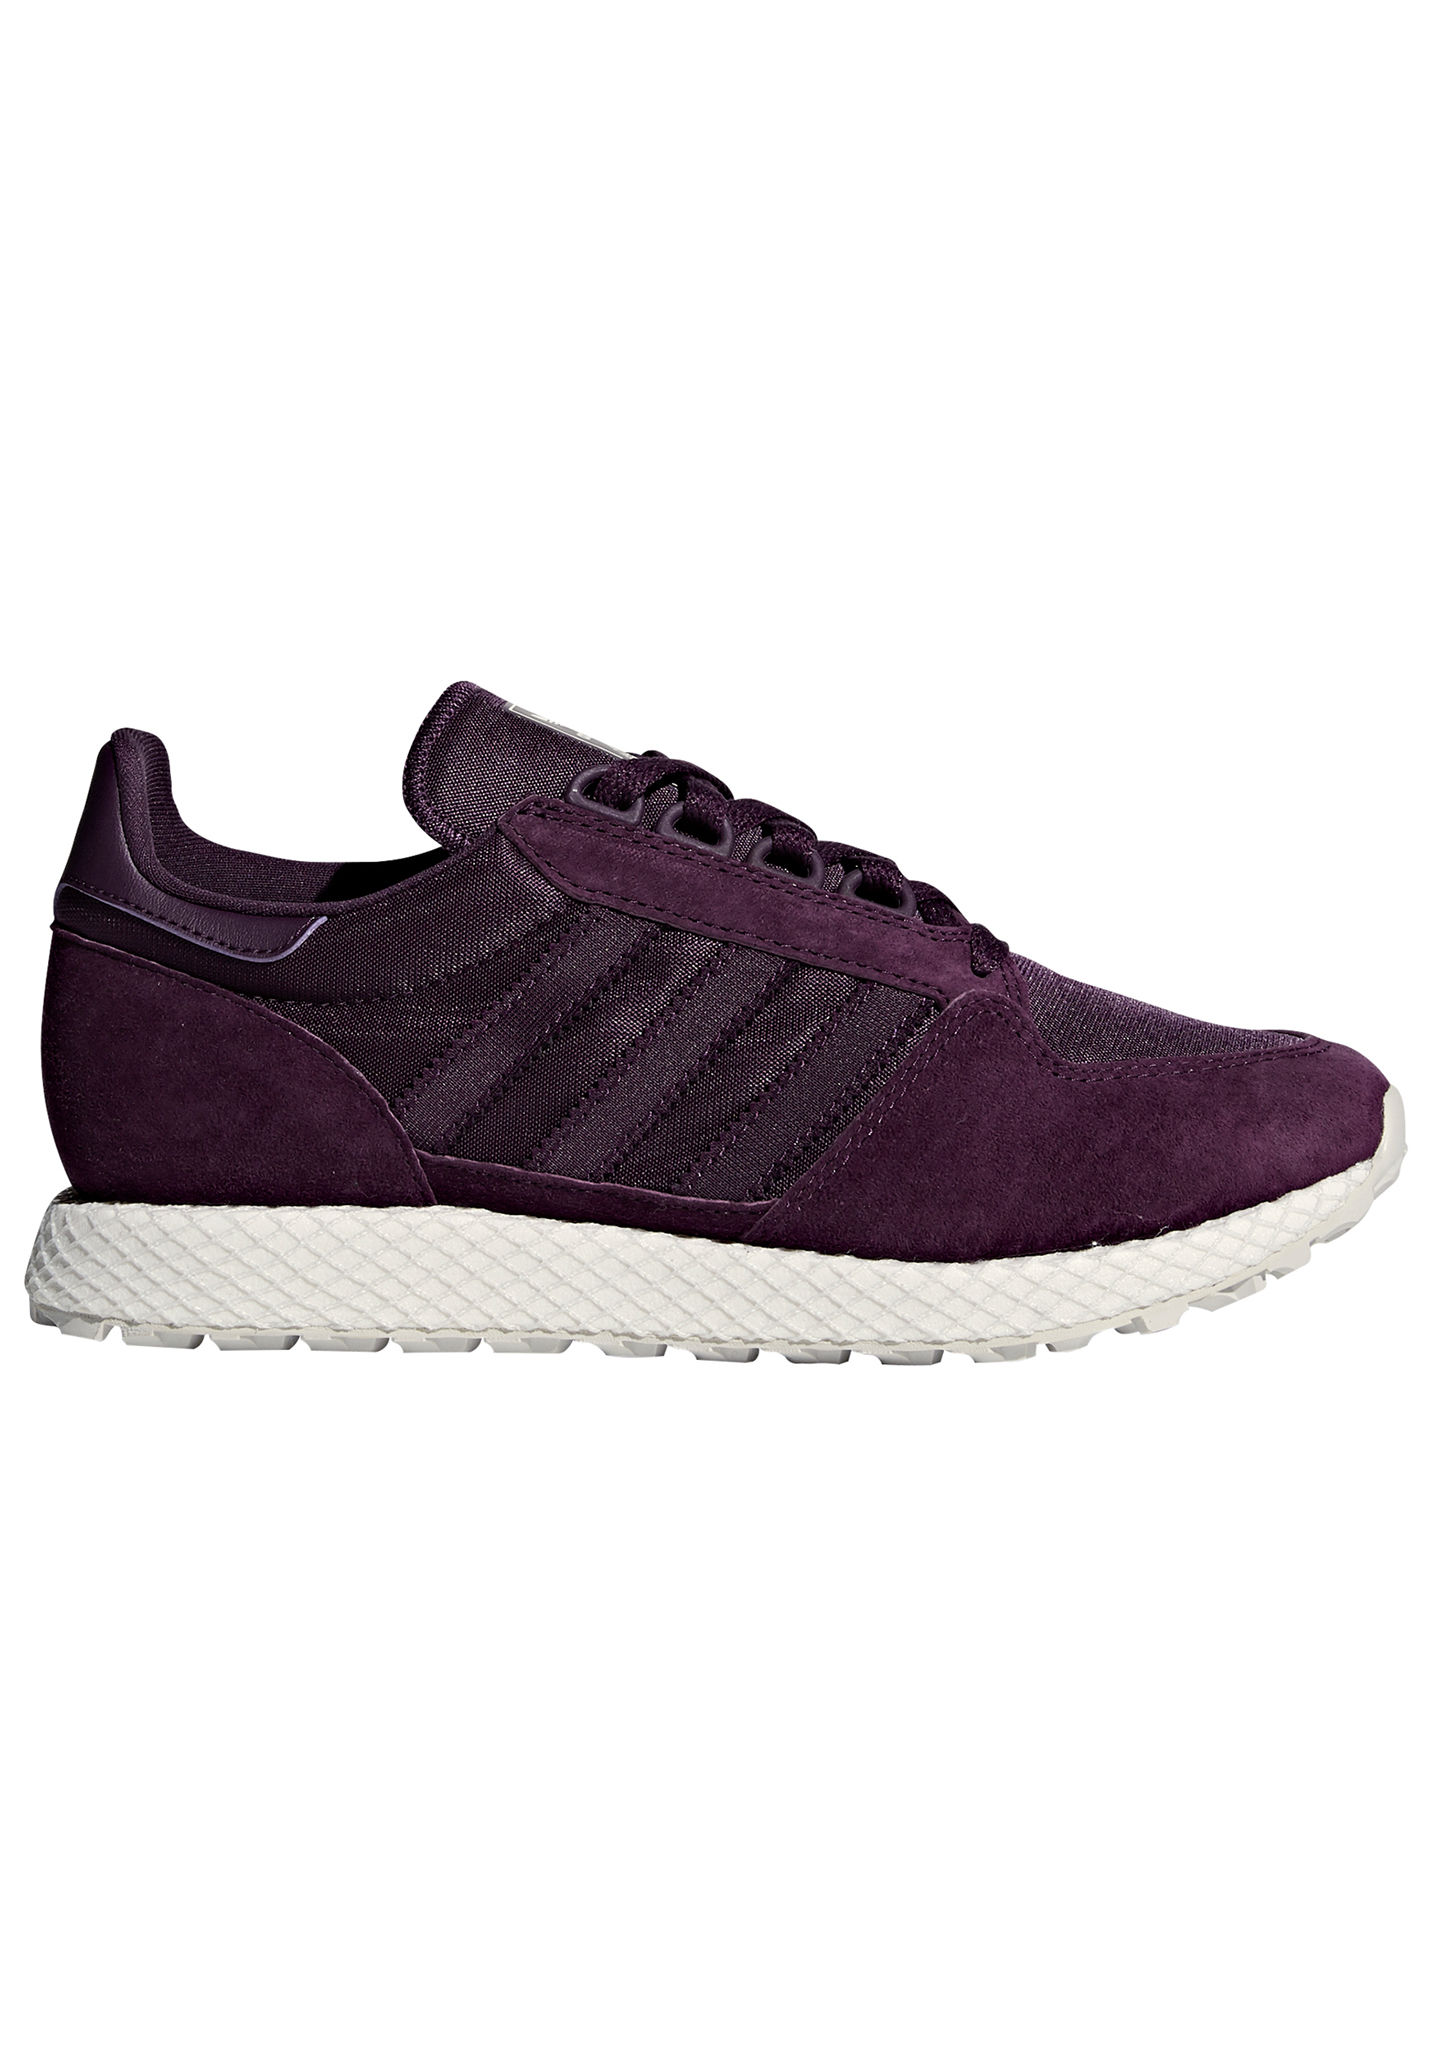 huge discount 19a31 79c9d ADIDAS ORIGINALS Forest Grove - Sneakers voor Dames - Rood - Planet Sports